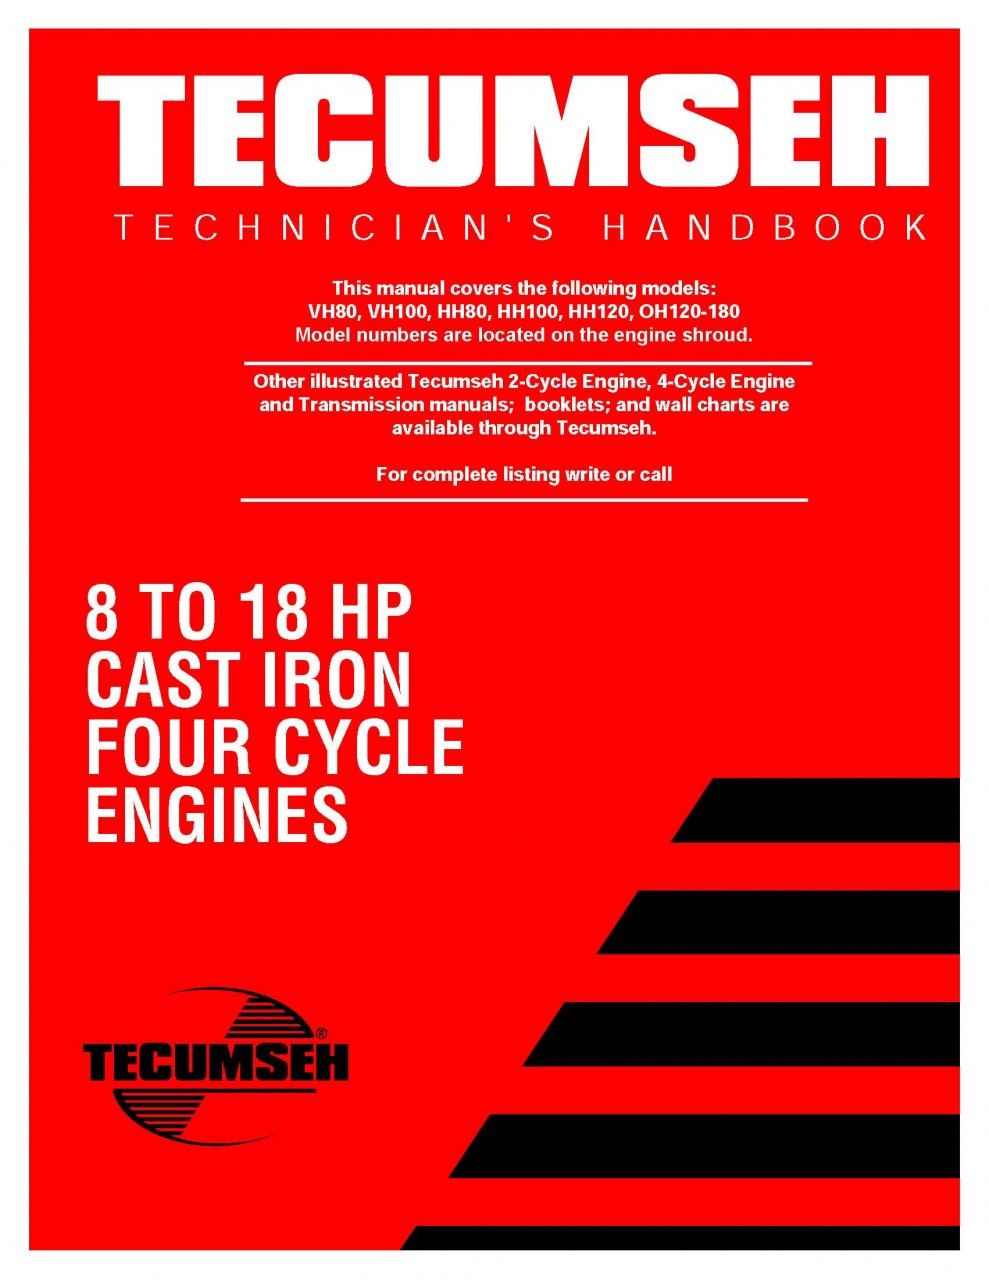 tecumseh engine service repair manual ohh ohv 4 cycle ohh50 65 rh repairmanuals4u com tecumseh service manual download tecumseh-service-manual-4-cycles-3- 11 hp